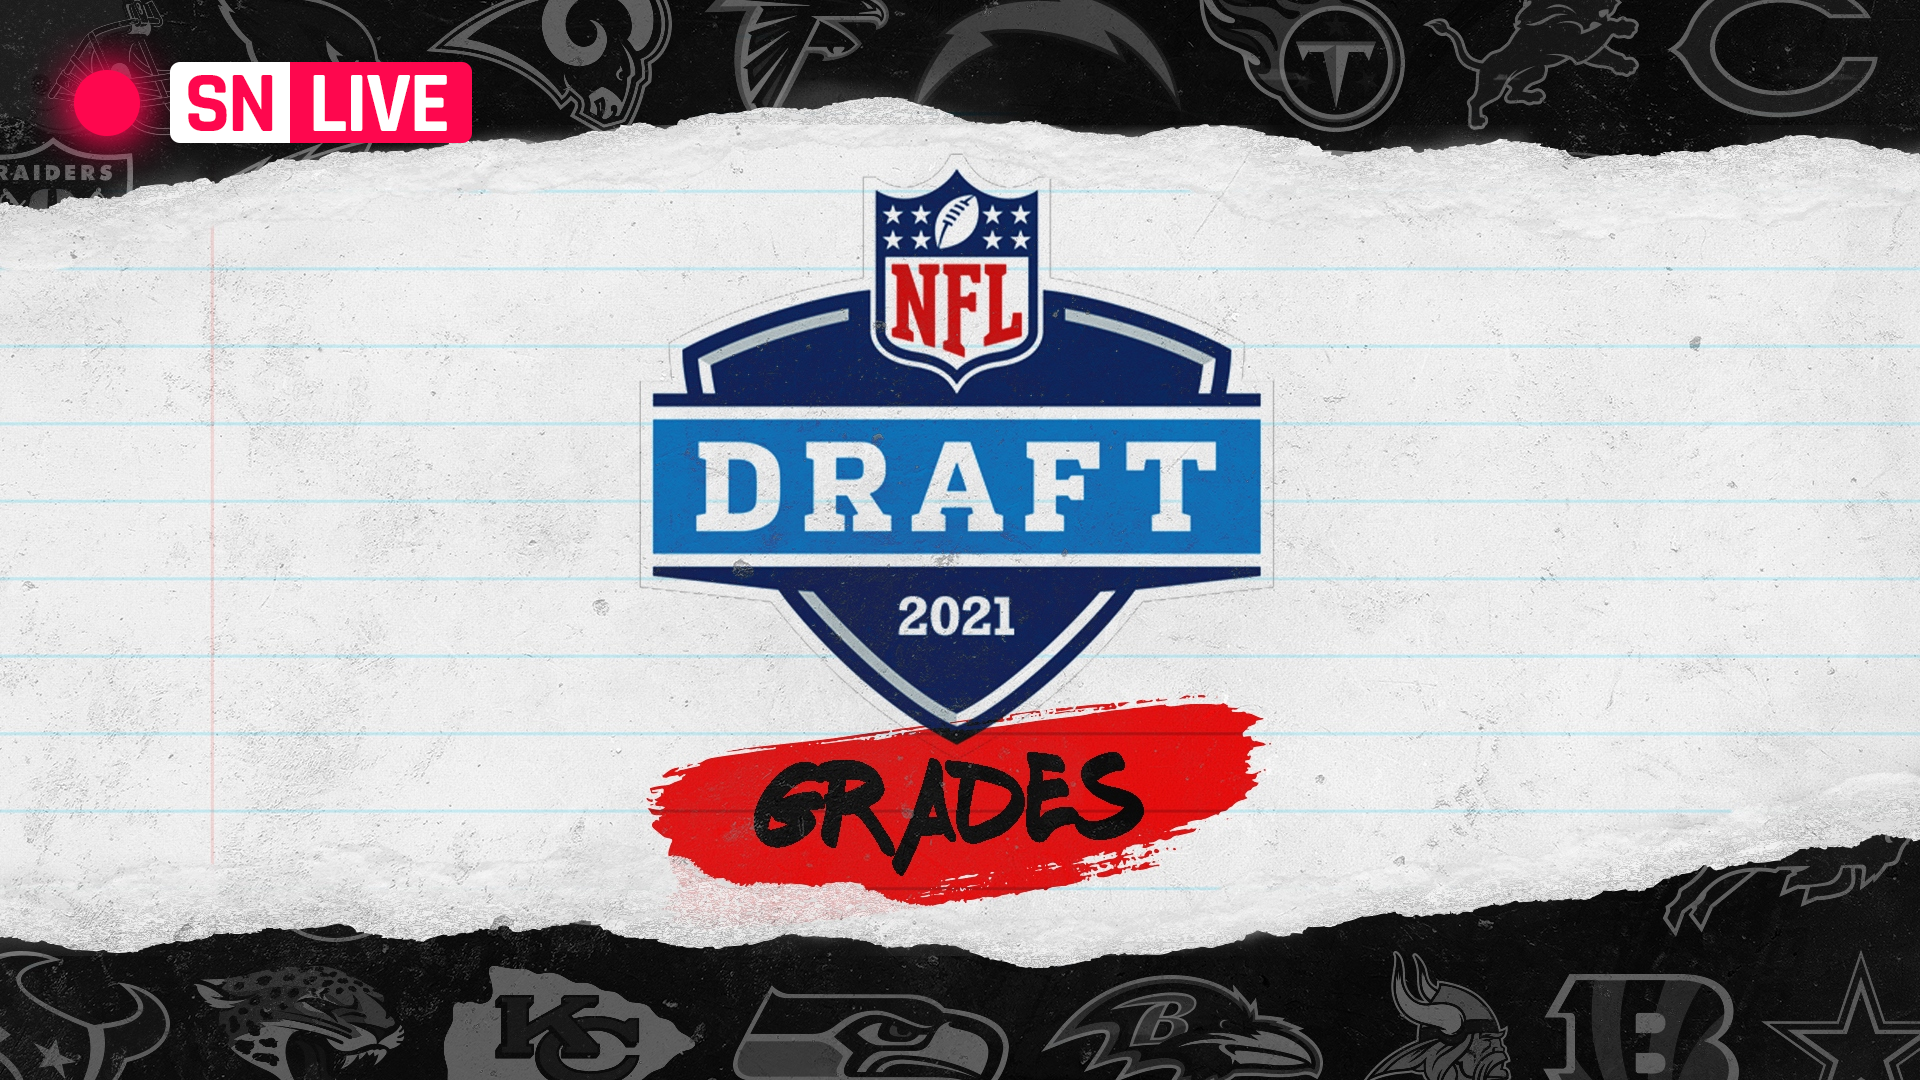 NFL Draft grades 2021: Live results & analysis for every pick in Rounds 1-3